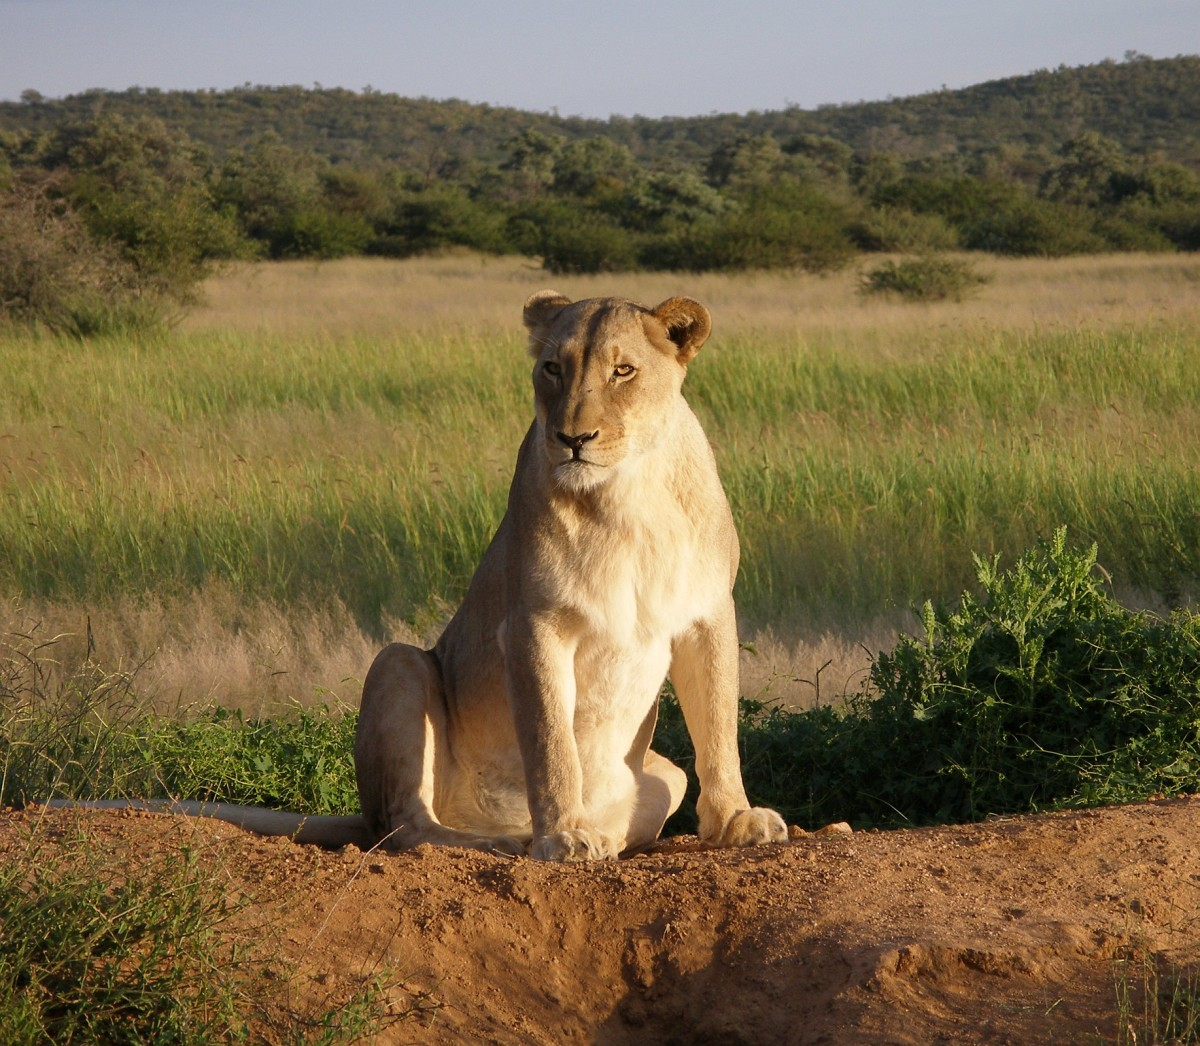 Lioness at Okonjima Lodge, Namibia